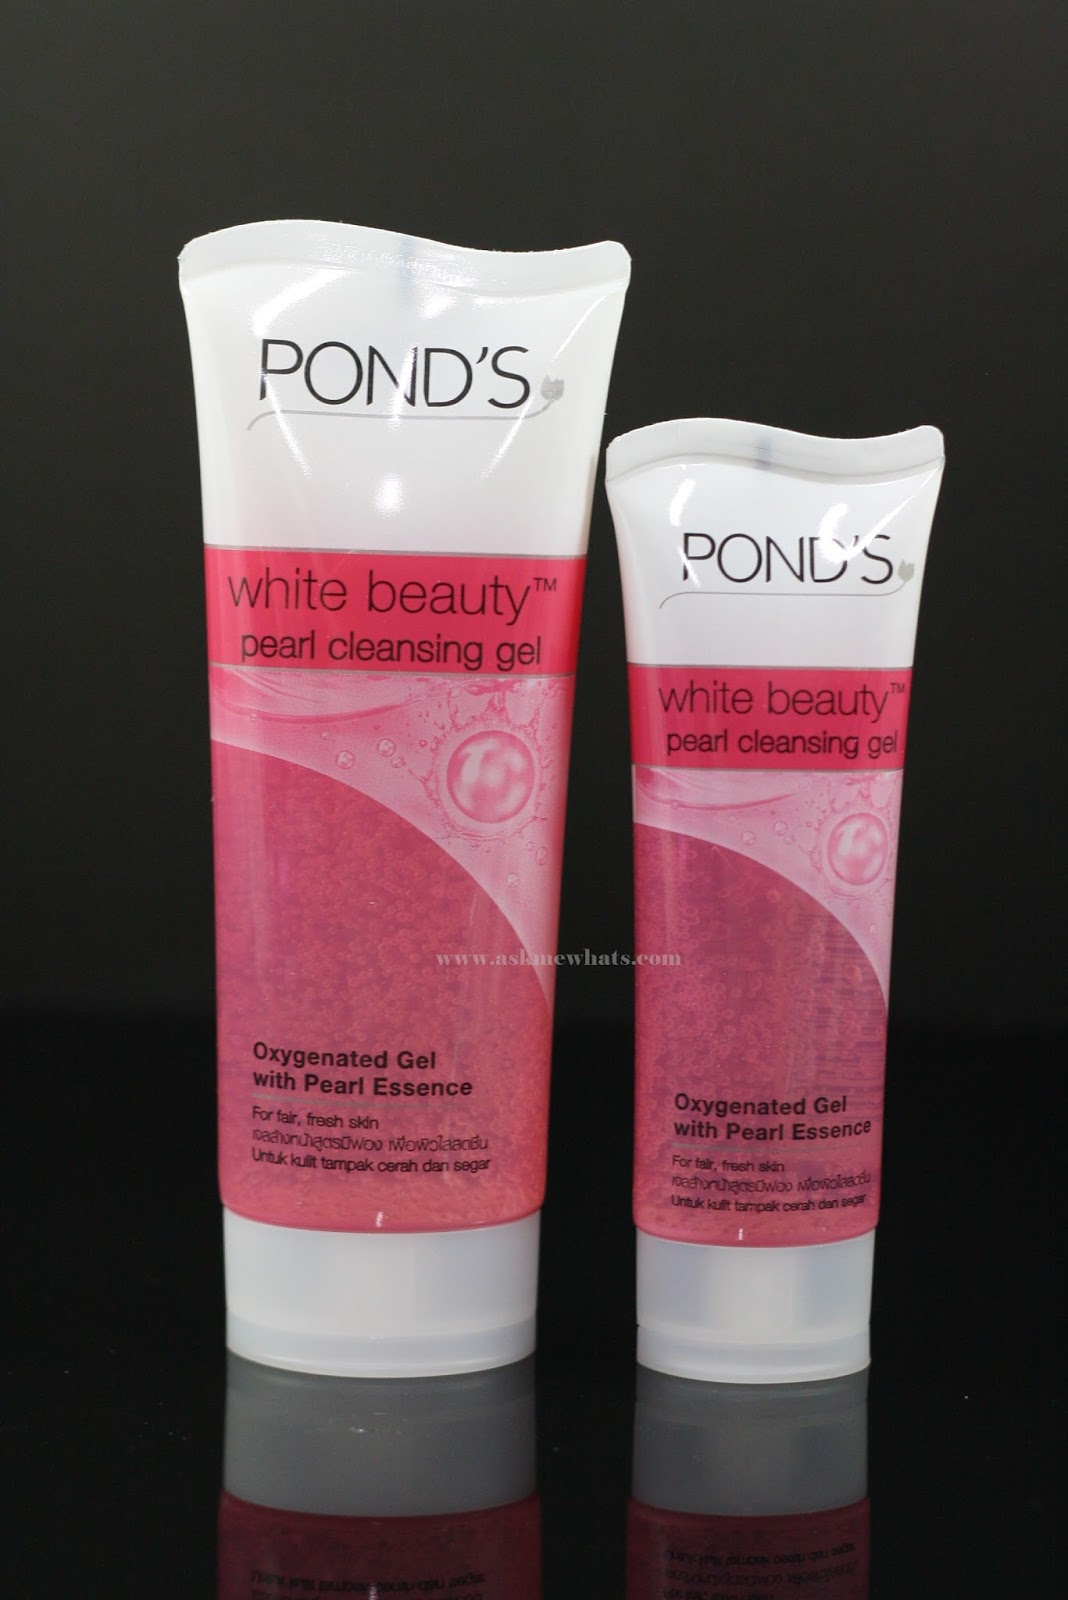 Askmewhats Top Beauty Blogger Philippines Skincare Makeup Review Ponds Flawless Dewy Rose Gel 50 G The Texture Is Amazing I Have Never Tried Cleansers And It Feels Like A Dream Doesnt Hurt That Product Smells Great My Skin Didnt Feel